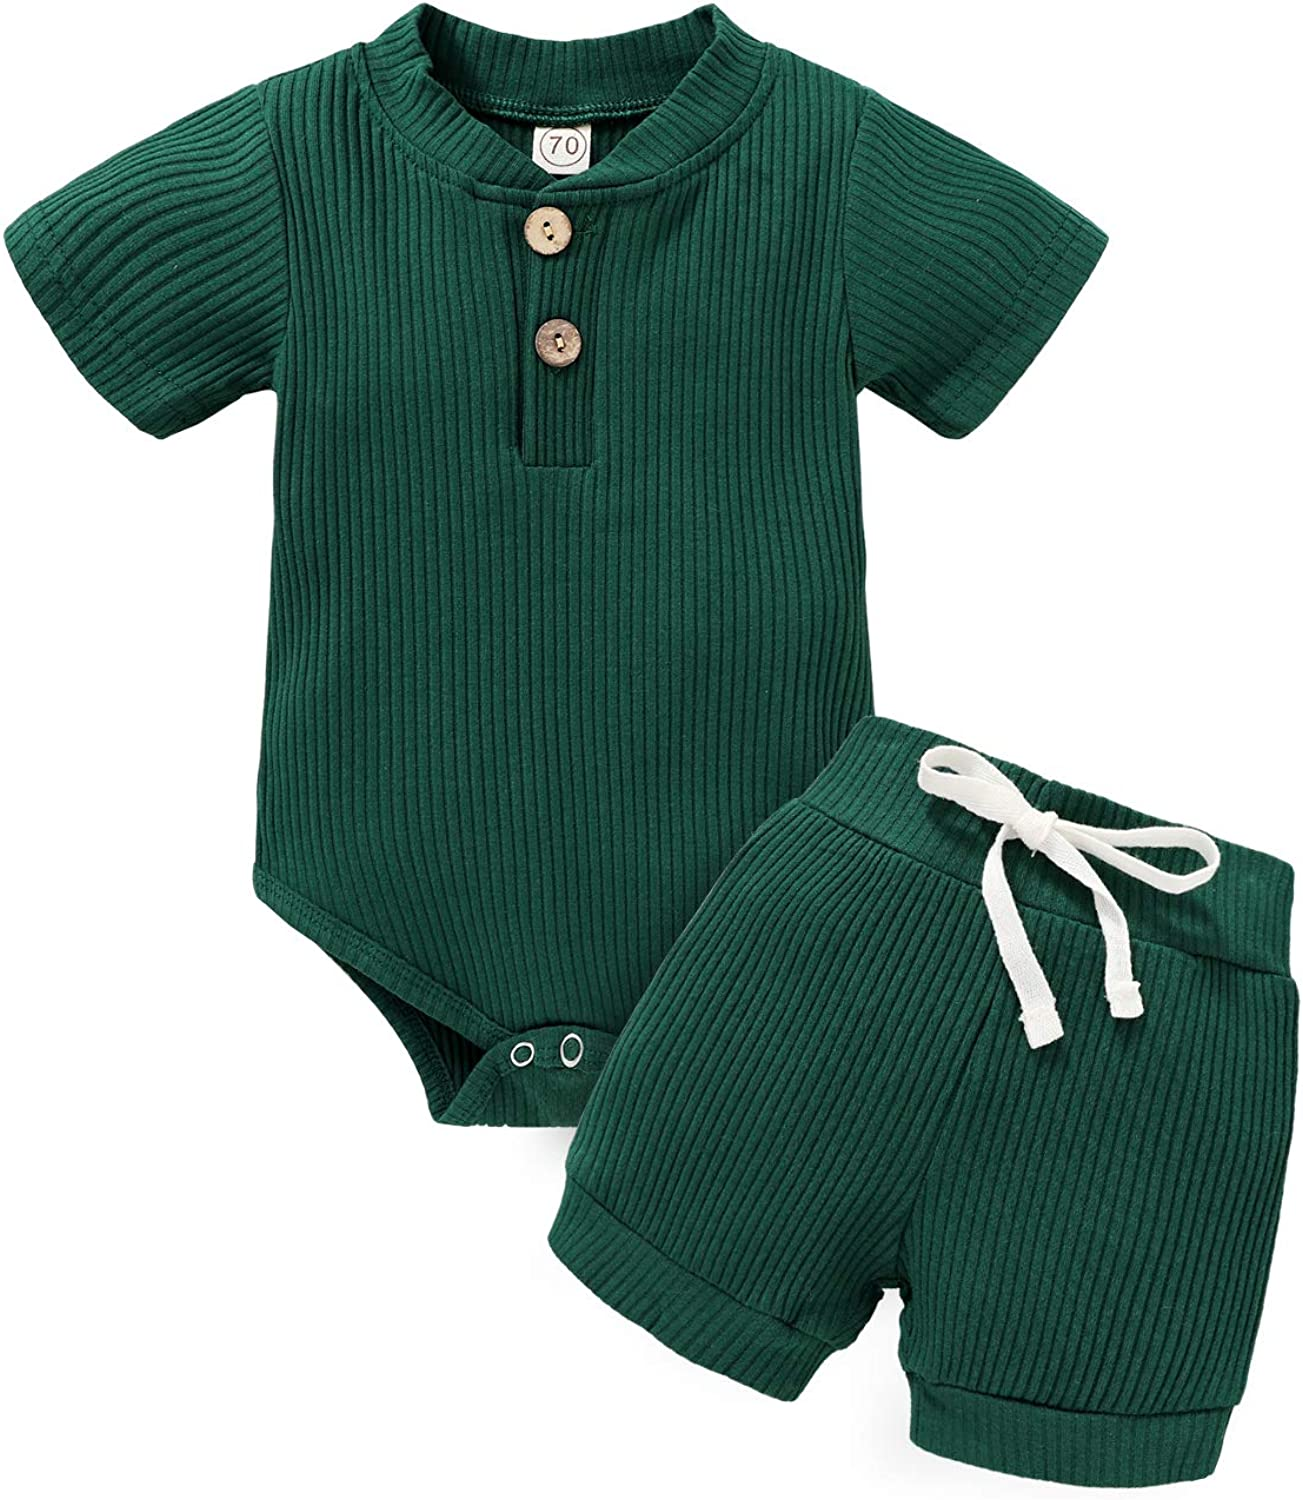 Newborn Baby Girls Boys Summer Clothes Sets Short Sleeve Solid Romper + Shorts Toddler Outfits 2Pcs